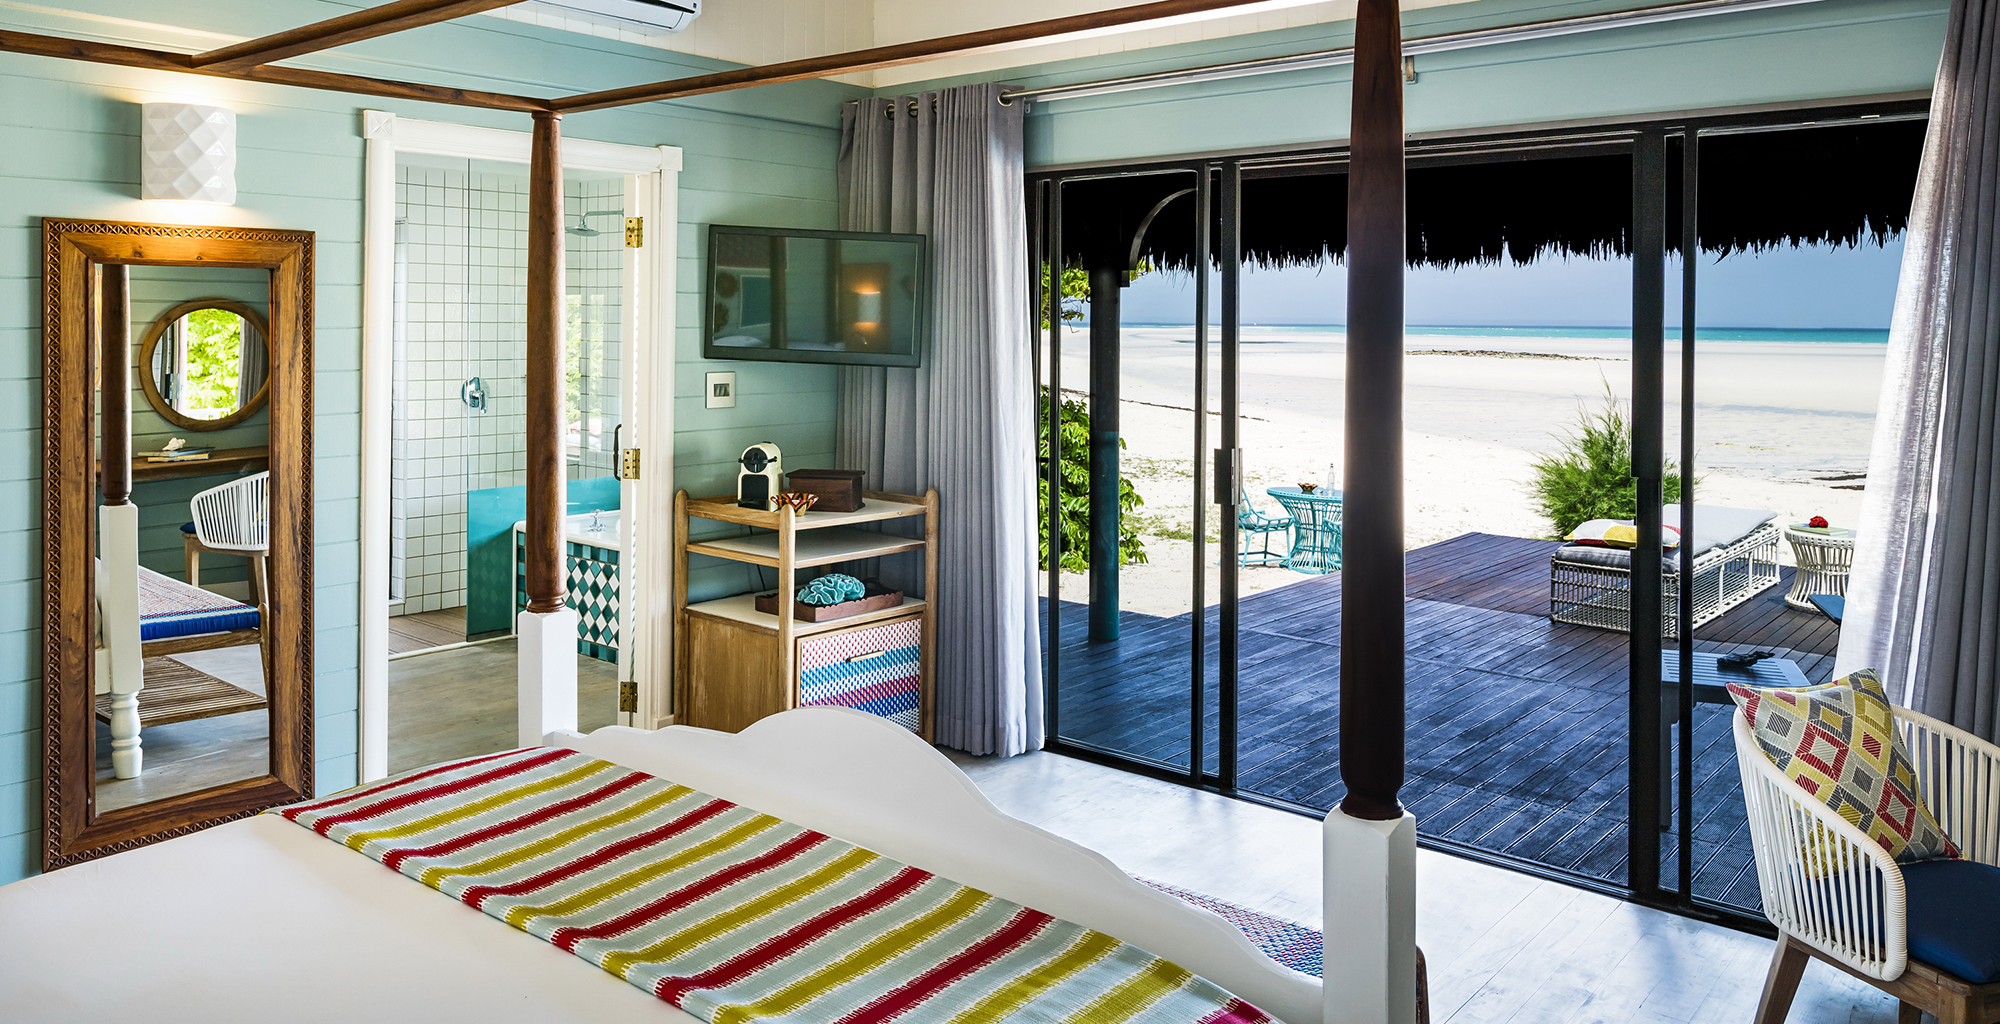 Mozambique-Medjumbe-Private-Island-Bedroom